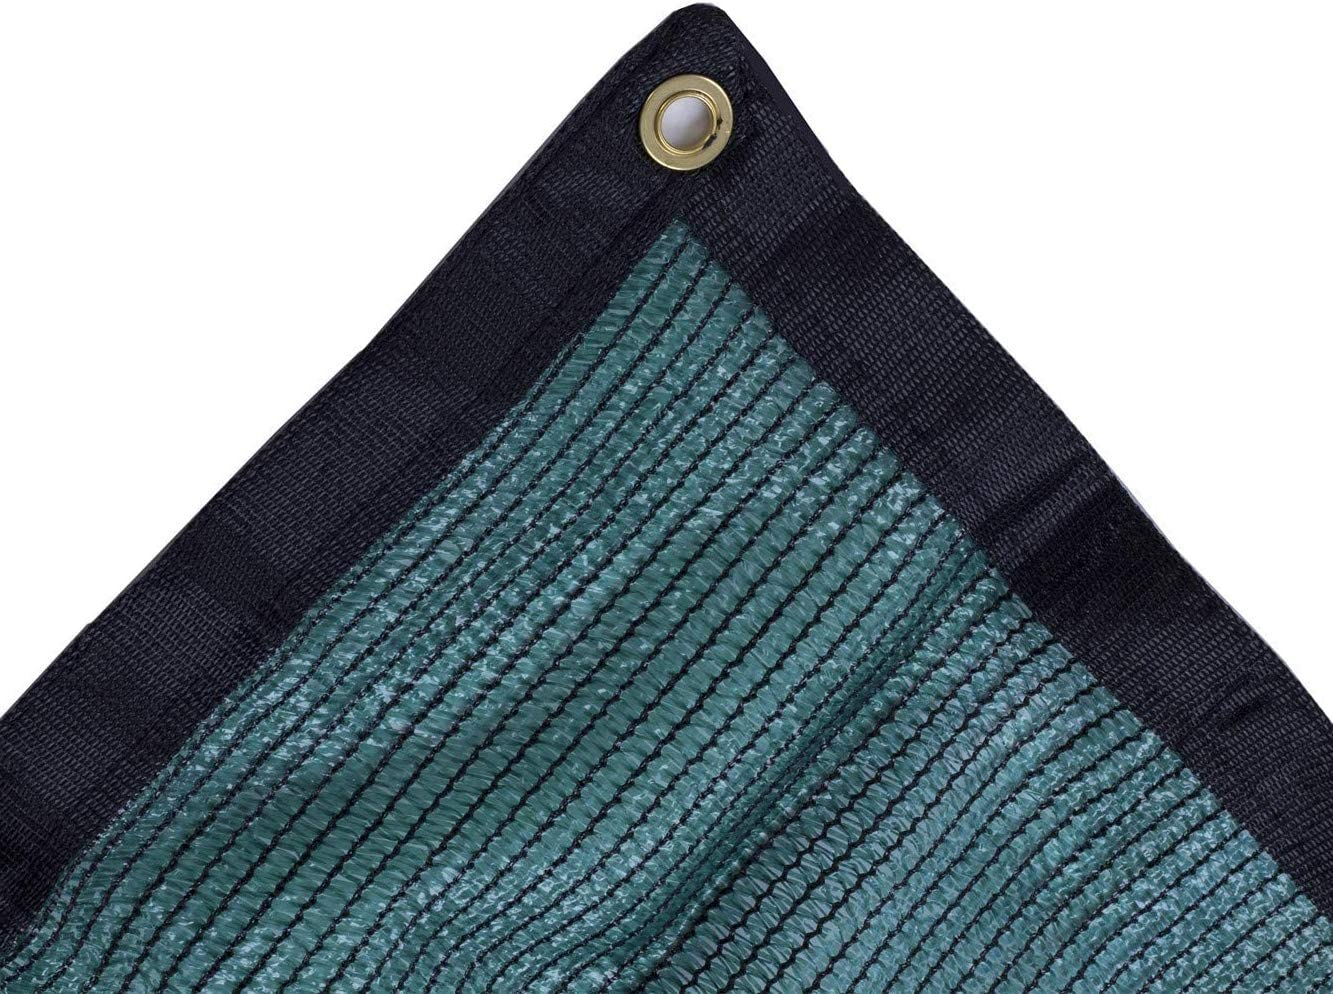 JTsuncover- Green 70% - Shade Cloth Mesh Sun Block - UV Resistant - Grommets Each 2ft - Come with Cables Ties - 20 ft x 50 ft